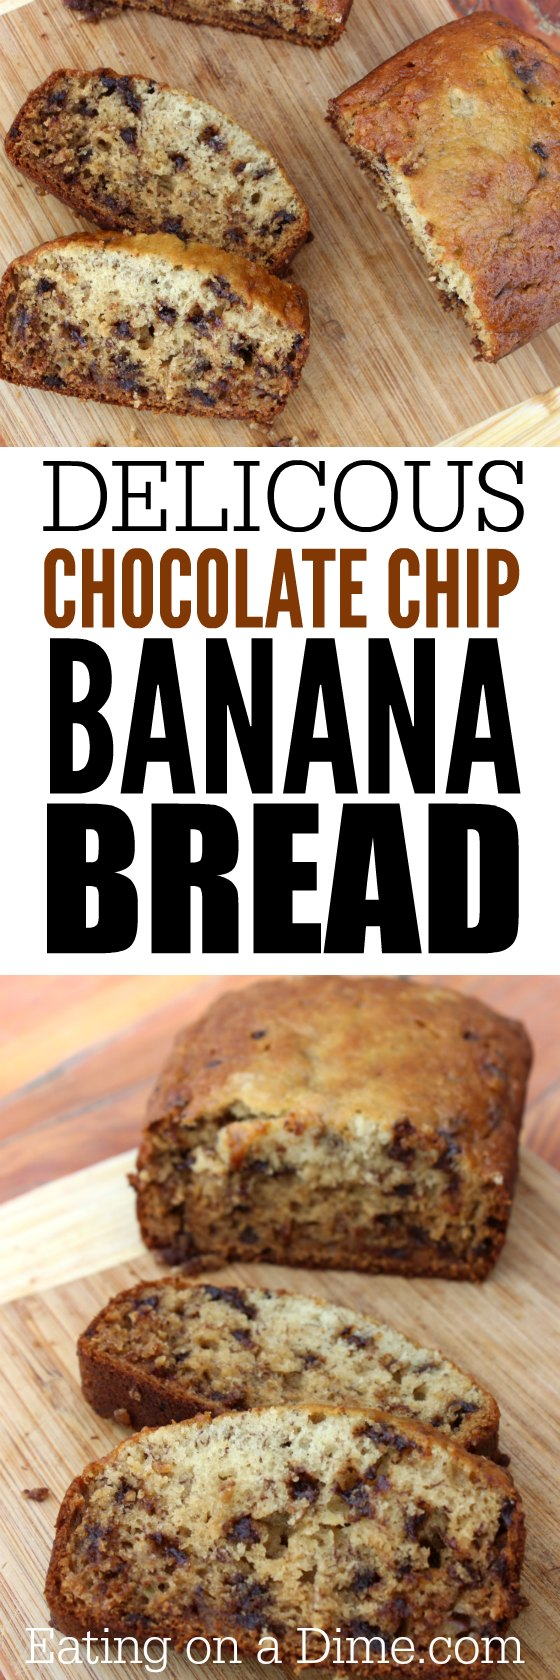 Simple Chocolate chip banana bread Recipe - Eating on a Dime